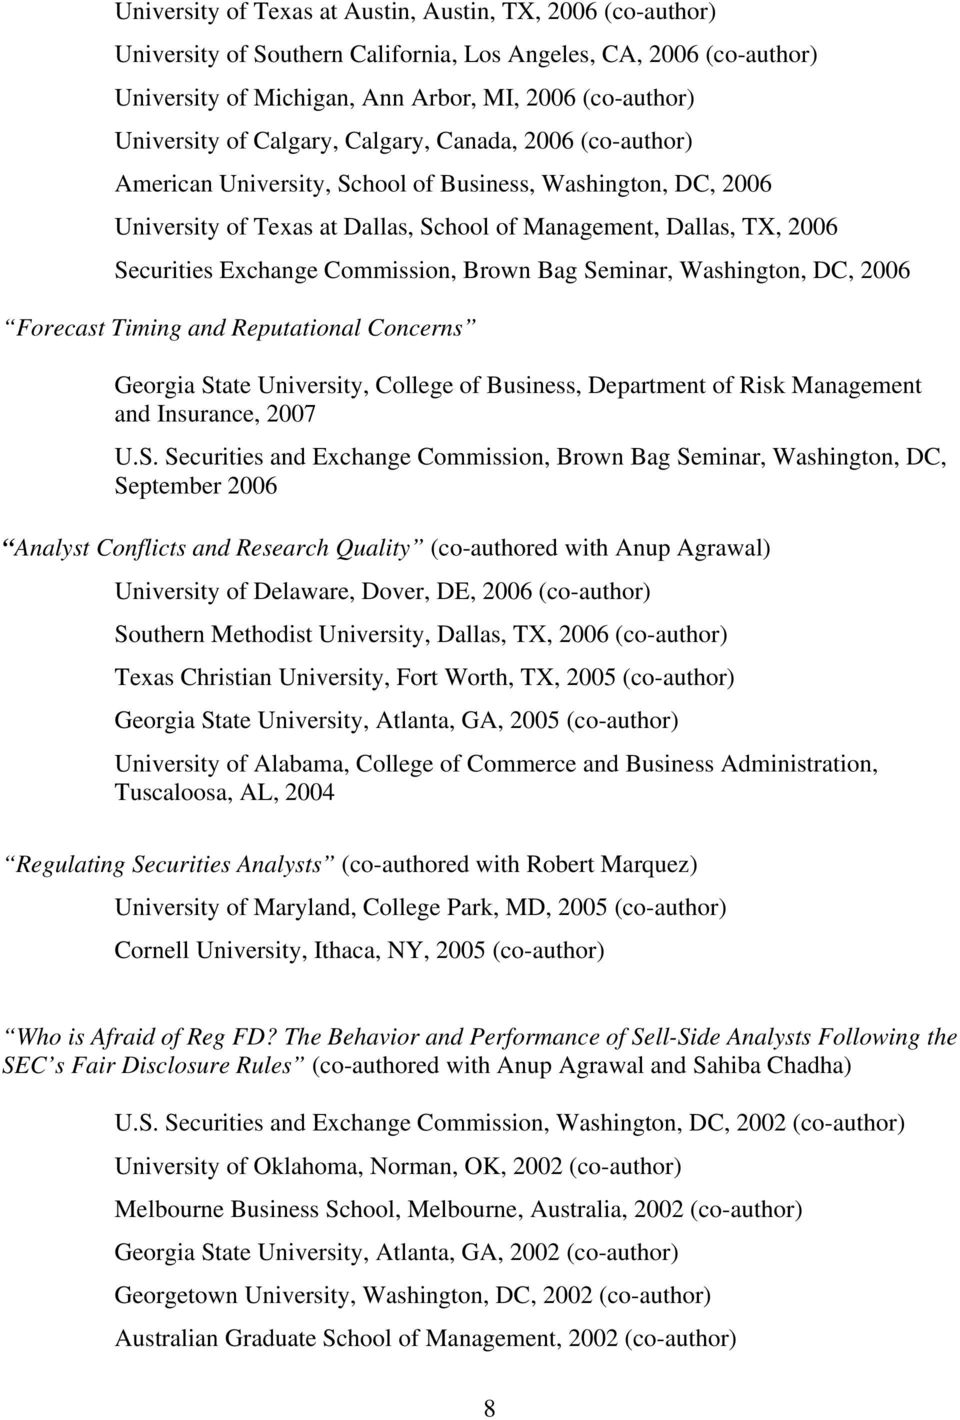 Mark A. Chen. J. Mack Robinson College Of Business Georgia Pertaining To Georgia State University Semester Start Date 2004 – 2005